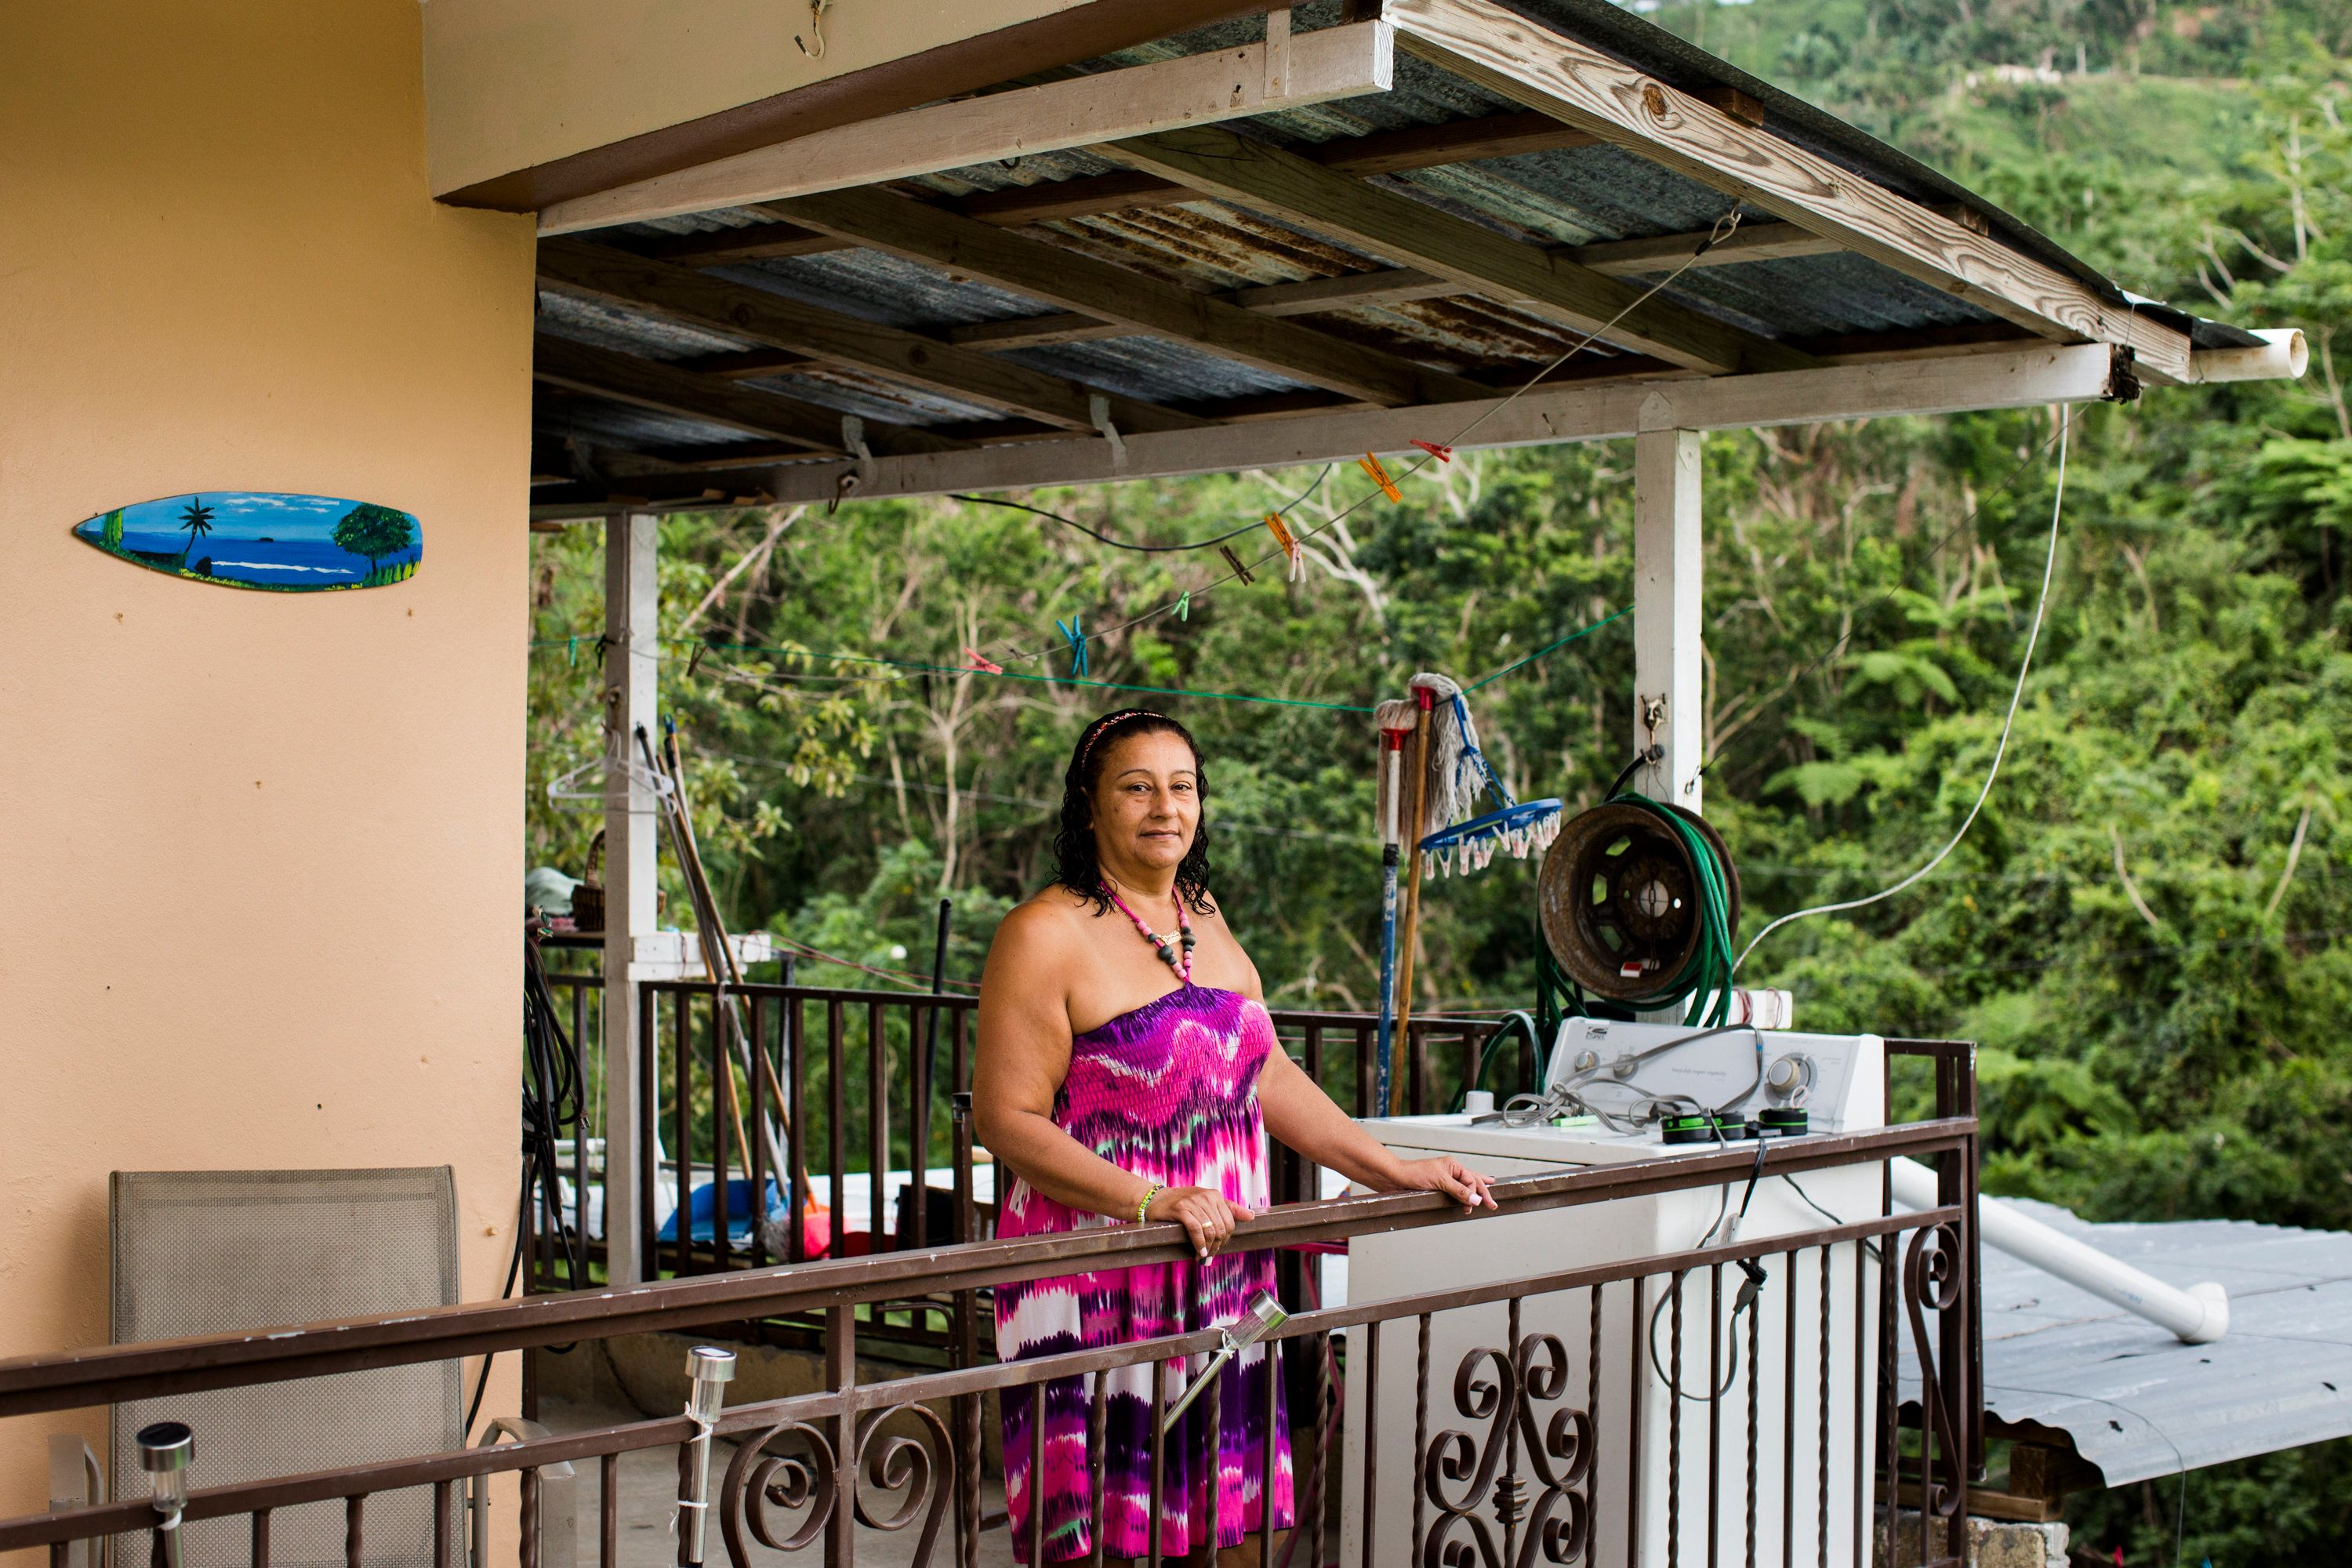 Carmen Bonilla Ramos, former housekeeper at the Tres Sirenas Inn, poses for a portrait at her home in Rincón, P.R., on Wed., January 24, 2018. Bonilla, who  worked at the boutique hotel for over a decade, lost her job after hurricane Maria damaged the business. Her home is still without power, four months after the disaster.  After hurricane Maria ravaged the island on Sep. 20, 2017, hundreds of thousands of people have left the island and many businesses have been affected. (Erika P. Rodriguez / Huffington Post)